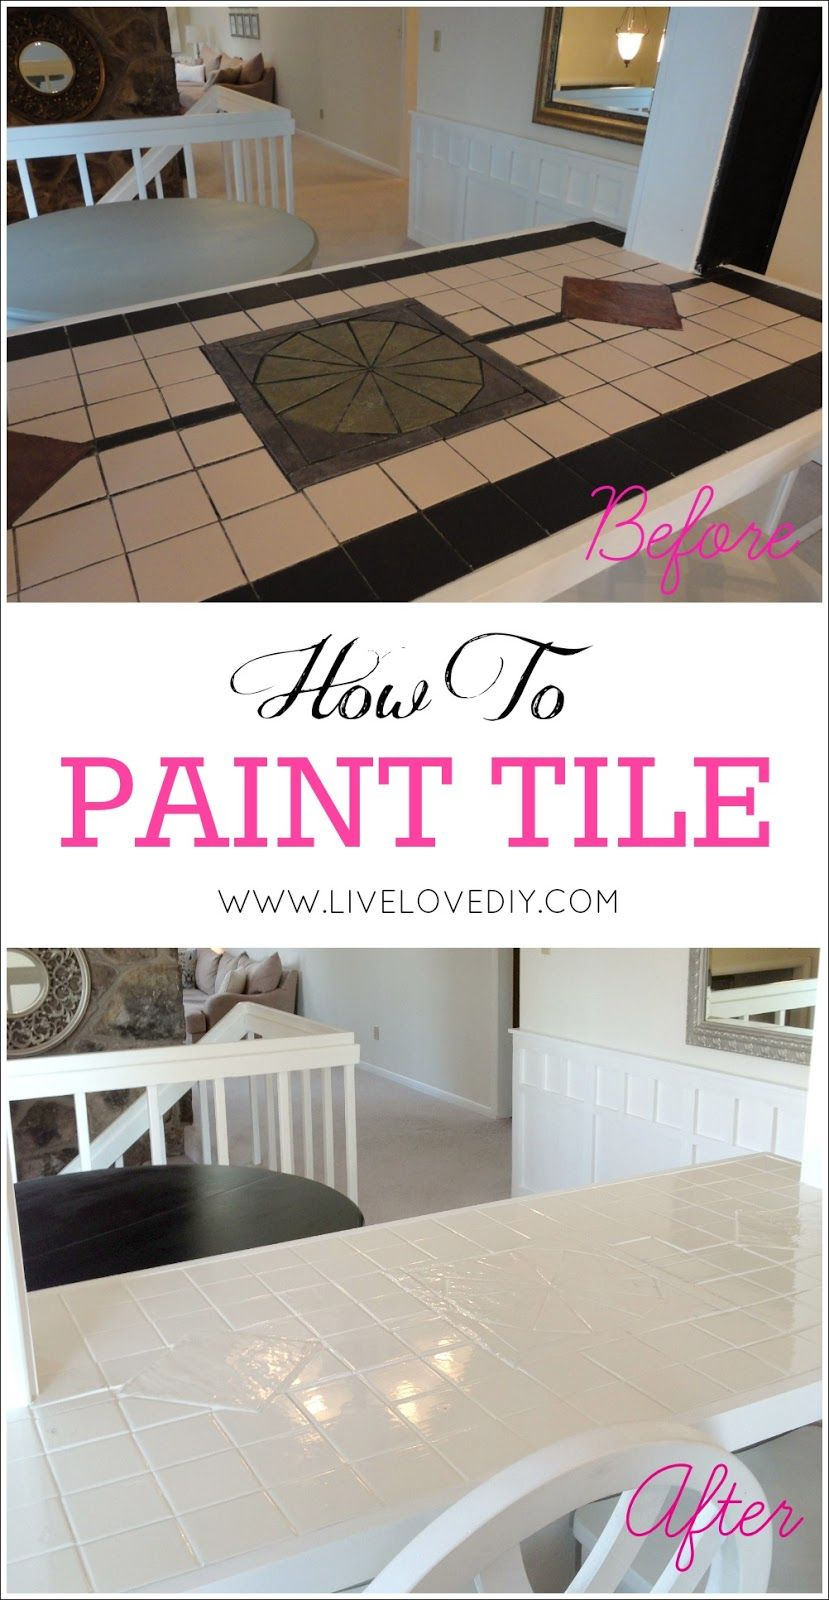 How To Paint Tile Countertops Painting Tile Tile Countertops